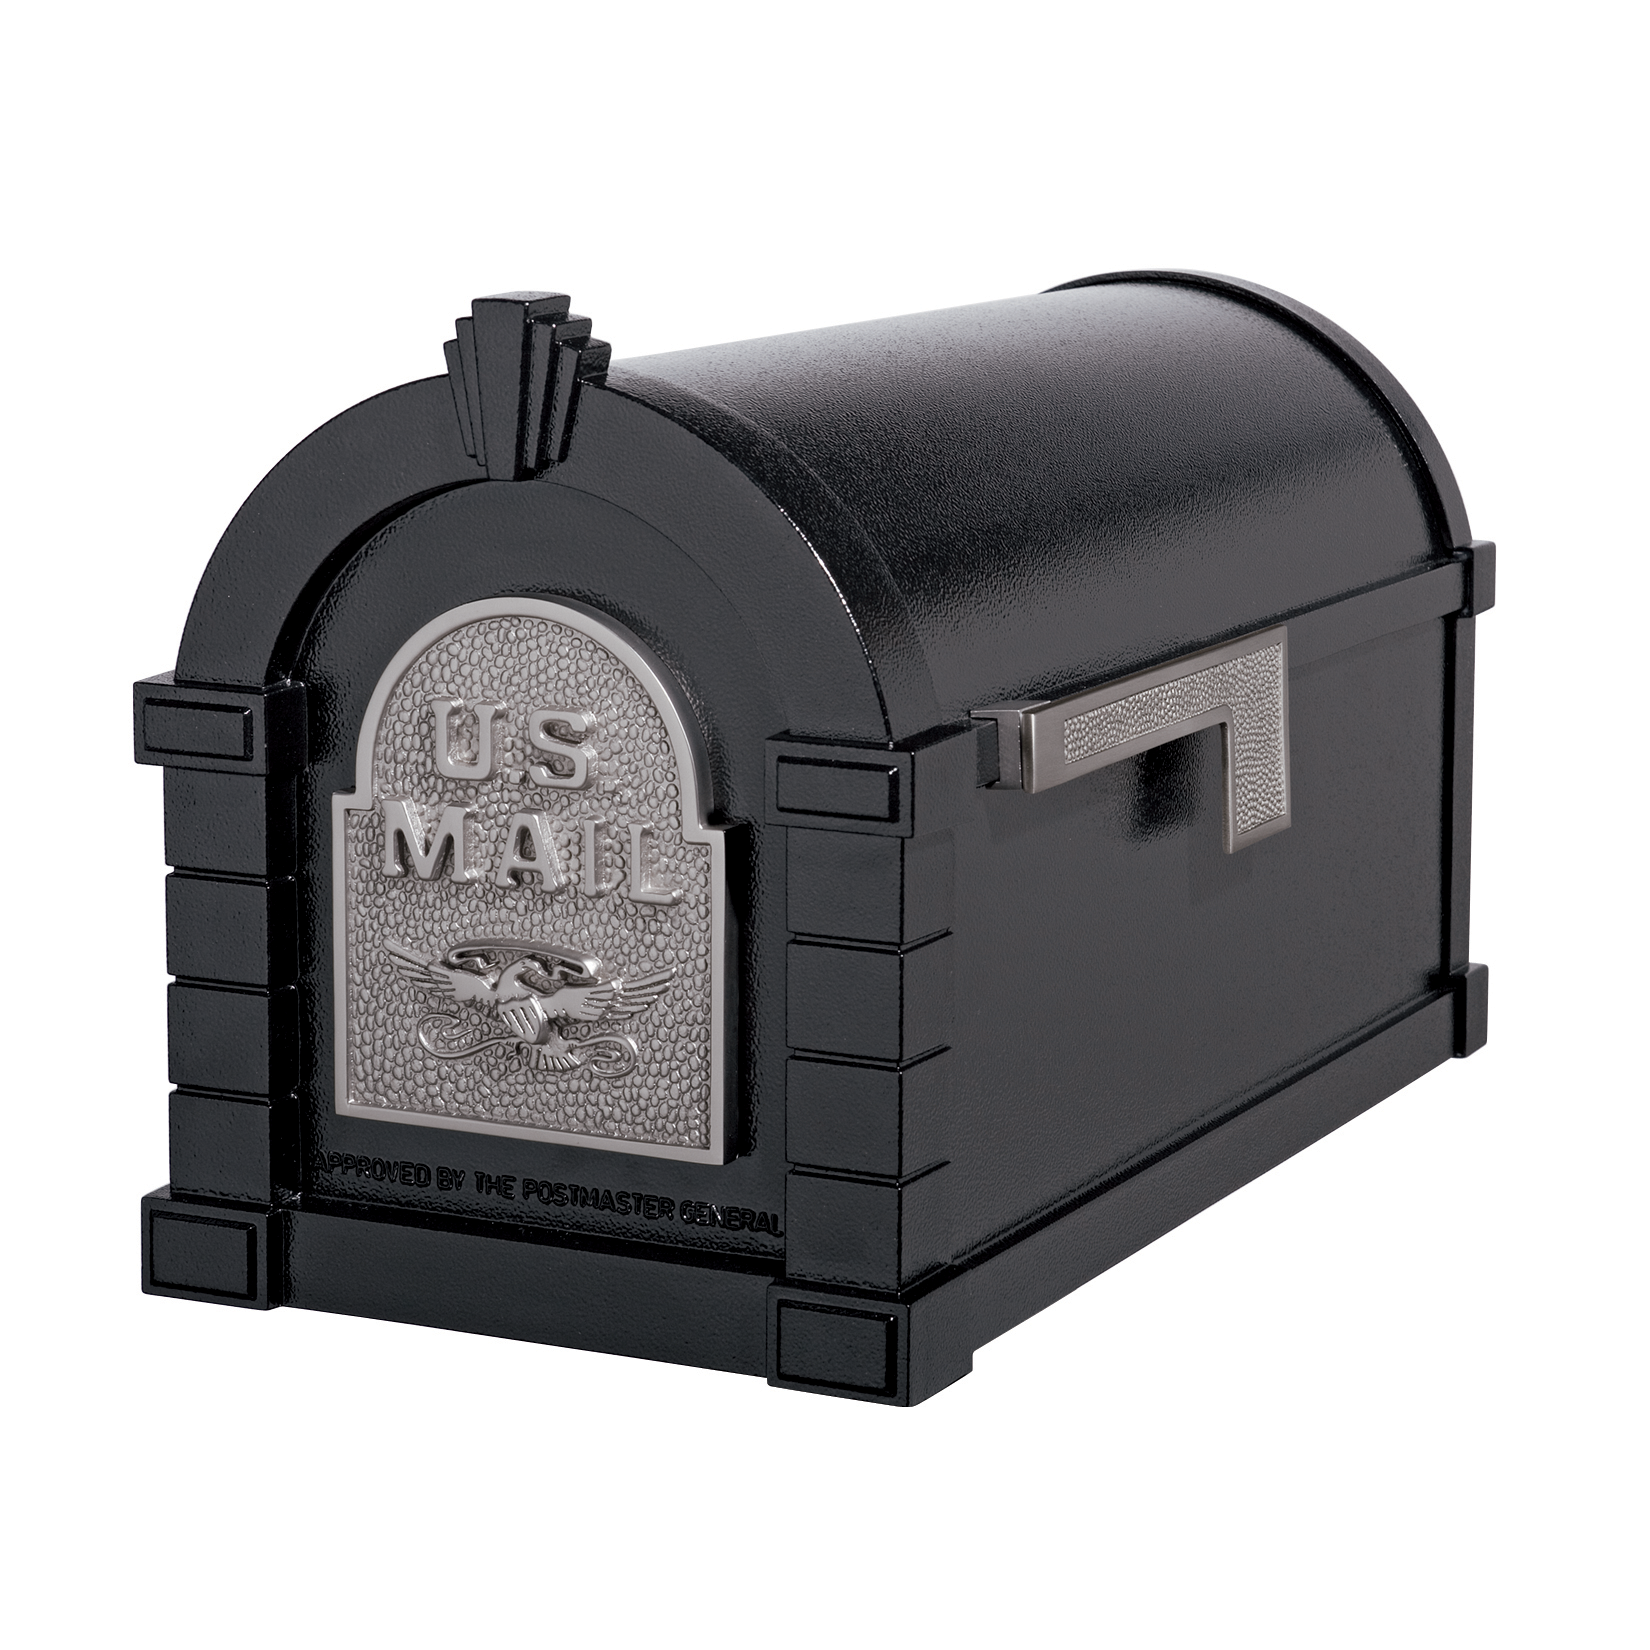 Gaines Eagle Keystone Mailboxes - Black with Satin Nickel